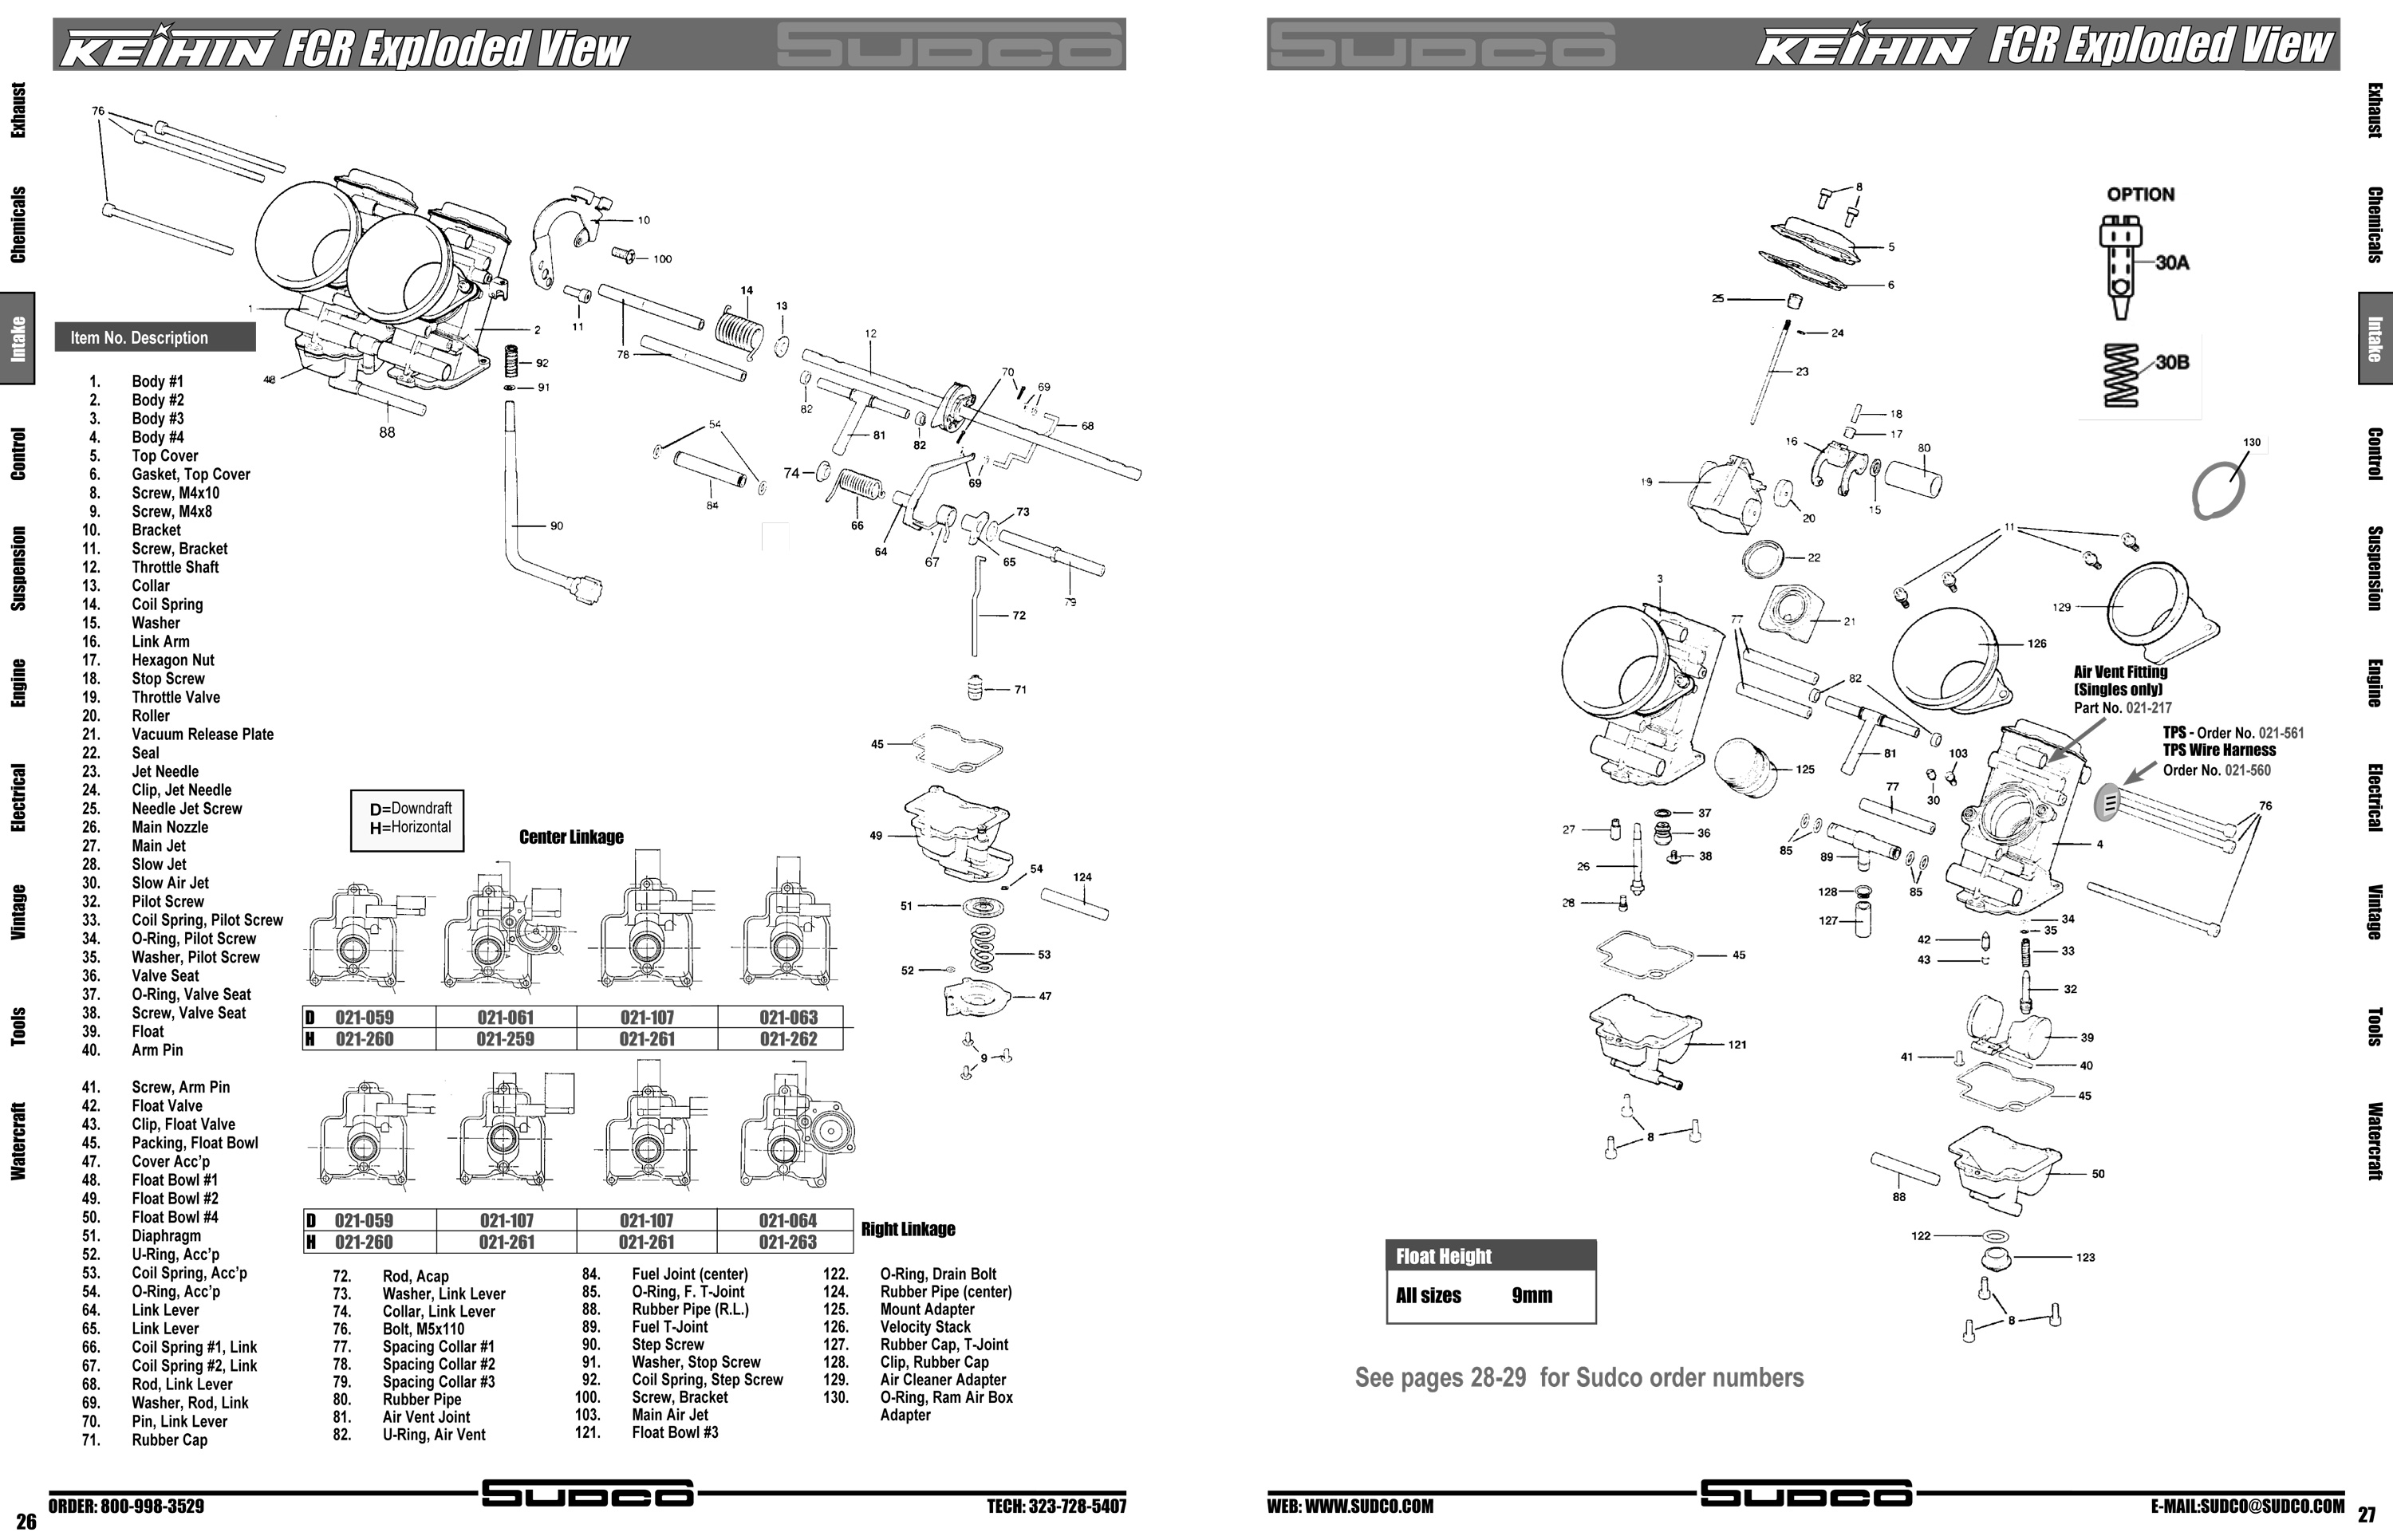 Carb Engine Diagram Wiring Library Pin 5 Hp Tecumseh Carburetor Linkage On Pinterest Fcr Carburetors